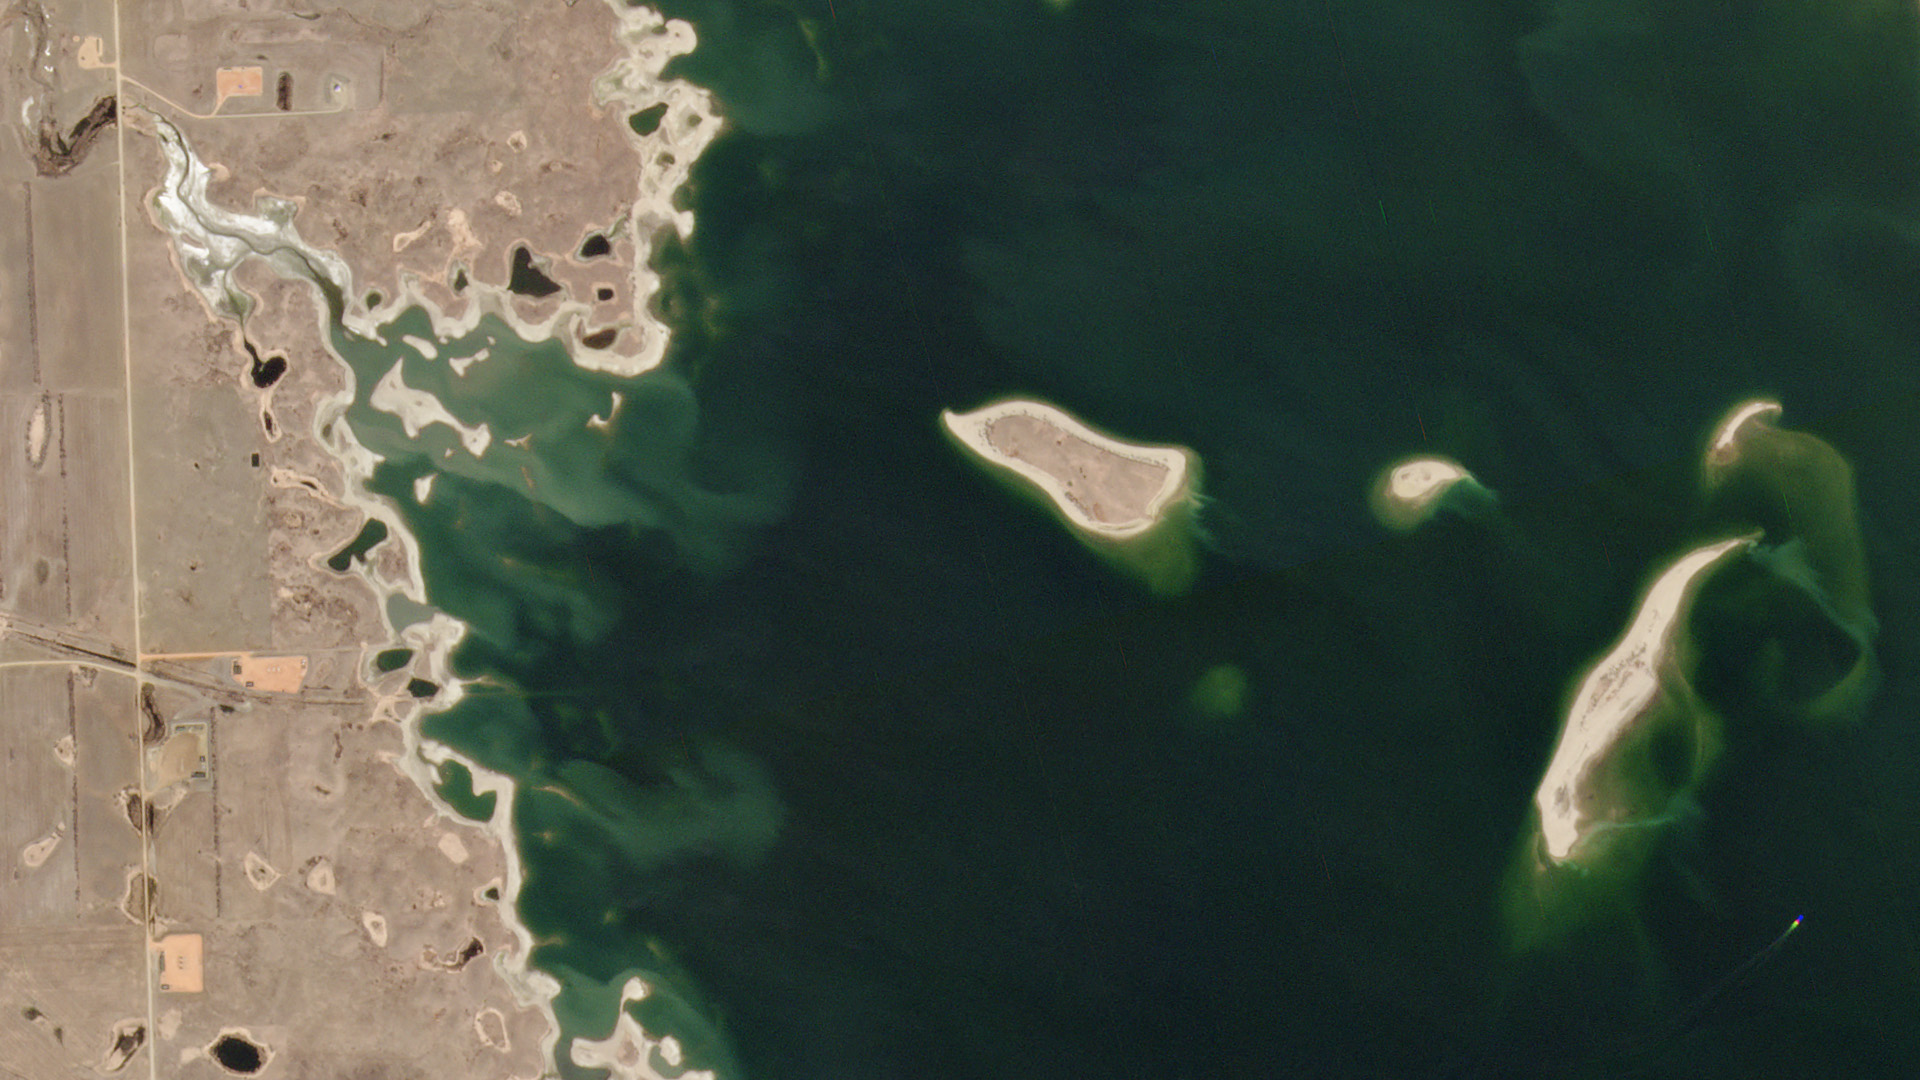 The U.S. Army Corps of Engineers uses PlanetScope data to monitor the habitat of several endangered species along the Missouri River. This pair of images shows the fluctuating shoreline of Lake Sakakawea, North Dakota (one of the river's many reservoirs) on April 22, 2019, and April 22, 2020. Endangered piping plover nest on the ever-shifting sandbars along the water's edge, and Planet's frequent and wide-area imagery helps the Corps ensure that changing lake levels do not damage their habitat. © 2020, Planet Labs Inc. All Rights Reserved.